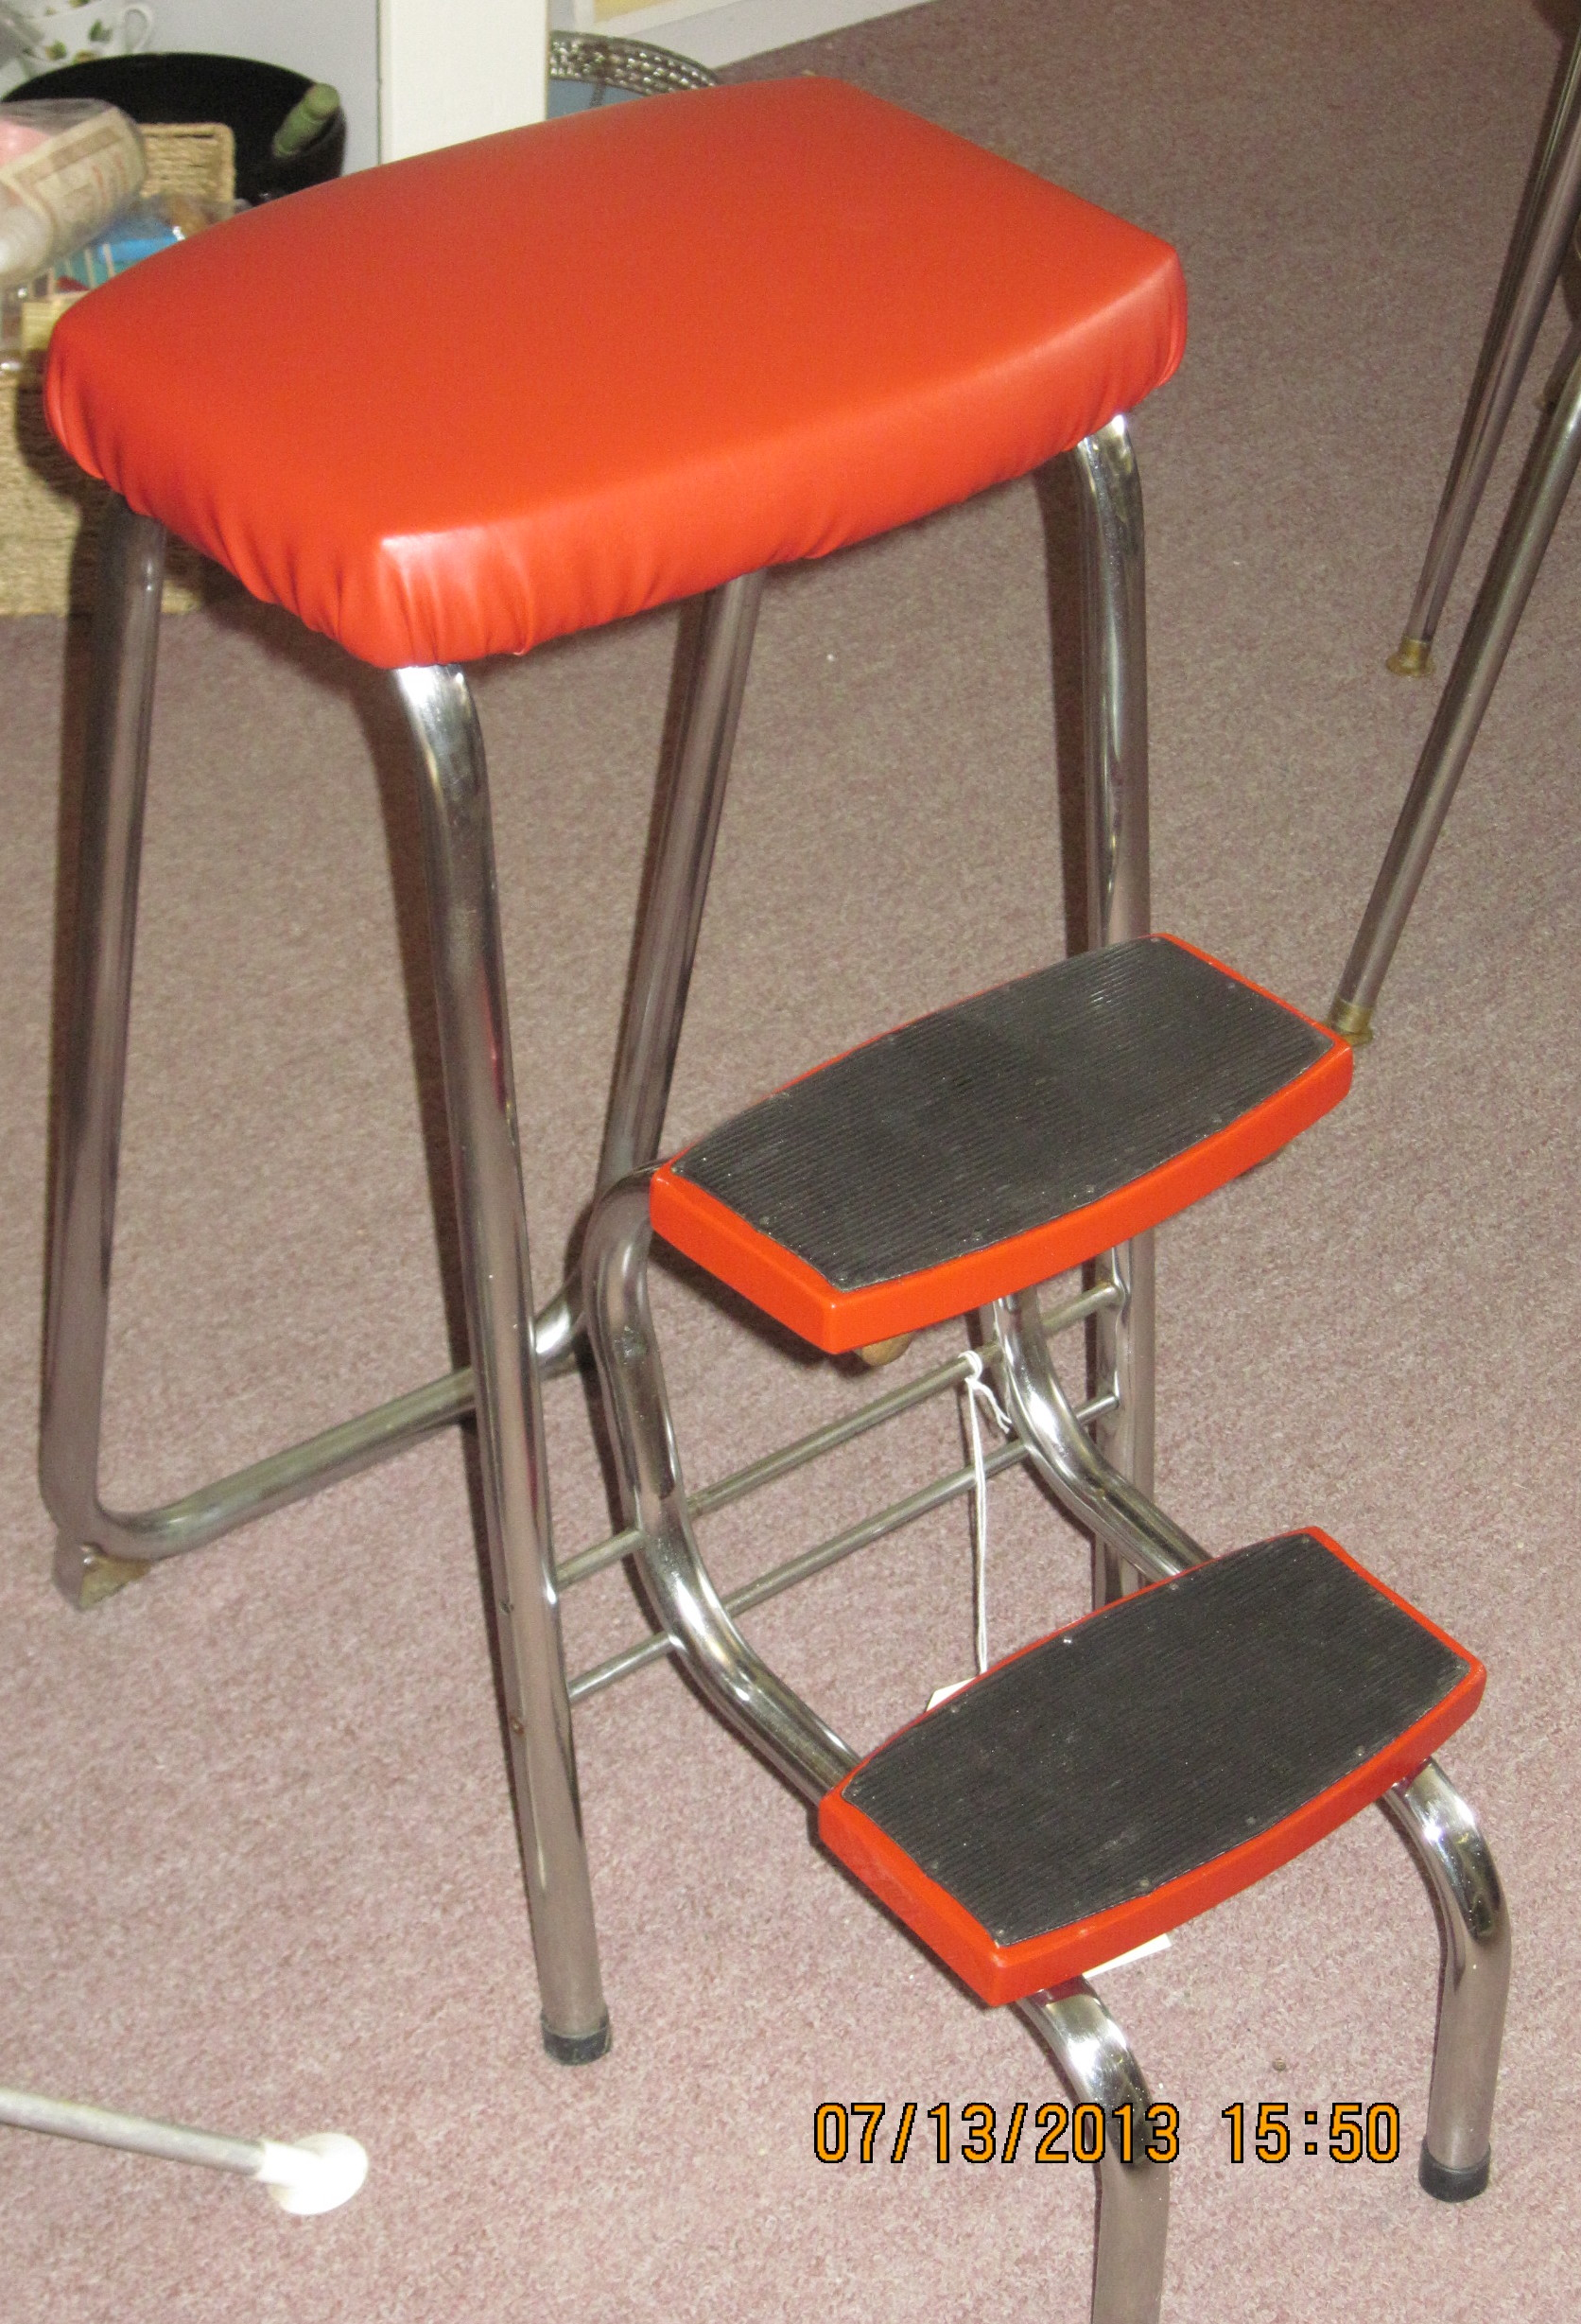 retro chair step stool covers for sale in sri lanka chrome with red vinyl upholstery